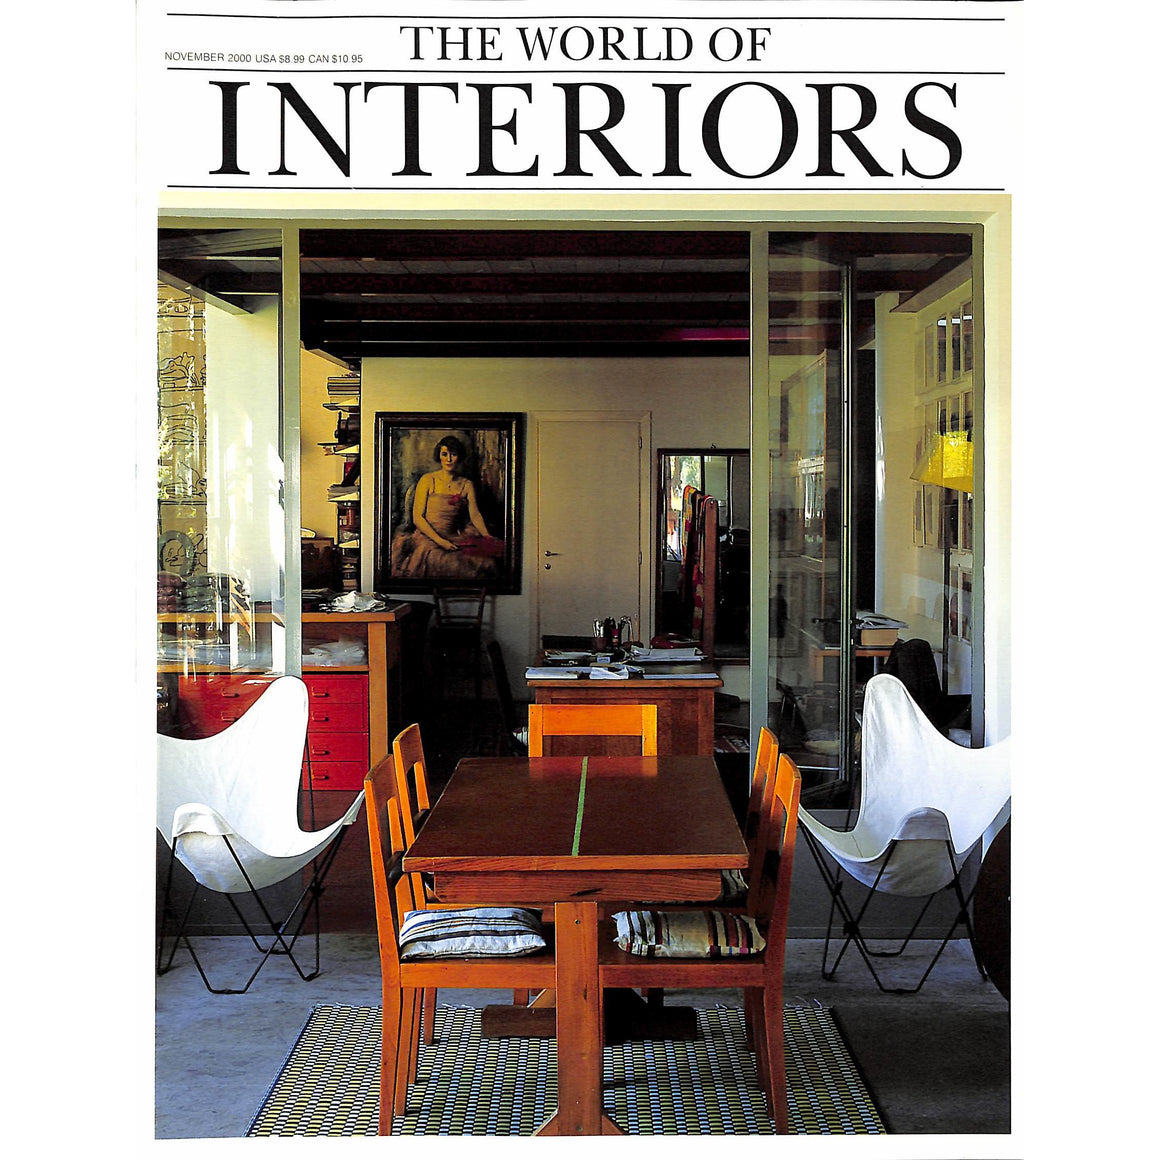 The World of Interiors November 2000